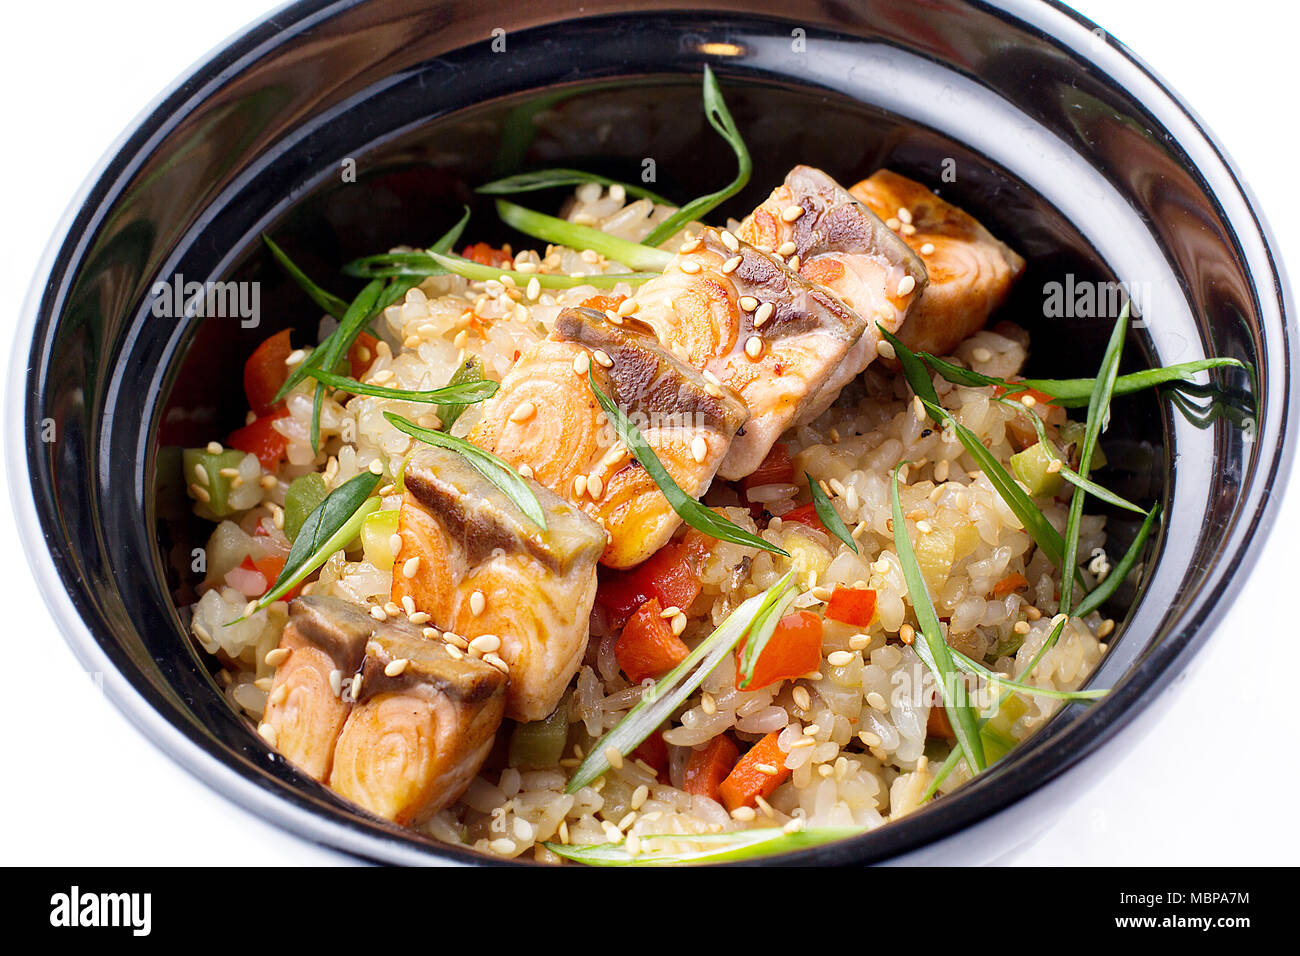 Japanese food rice with vegetables and fried salmon in a black bowl japanese food rice with vegetables and fried salmon in a black bowl japanese food dish isolated on white background rice with fried salmon in teriy forumfinder Choice Image